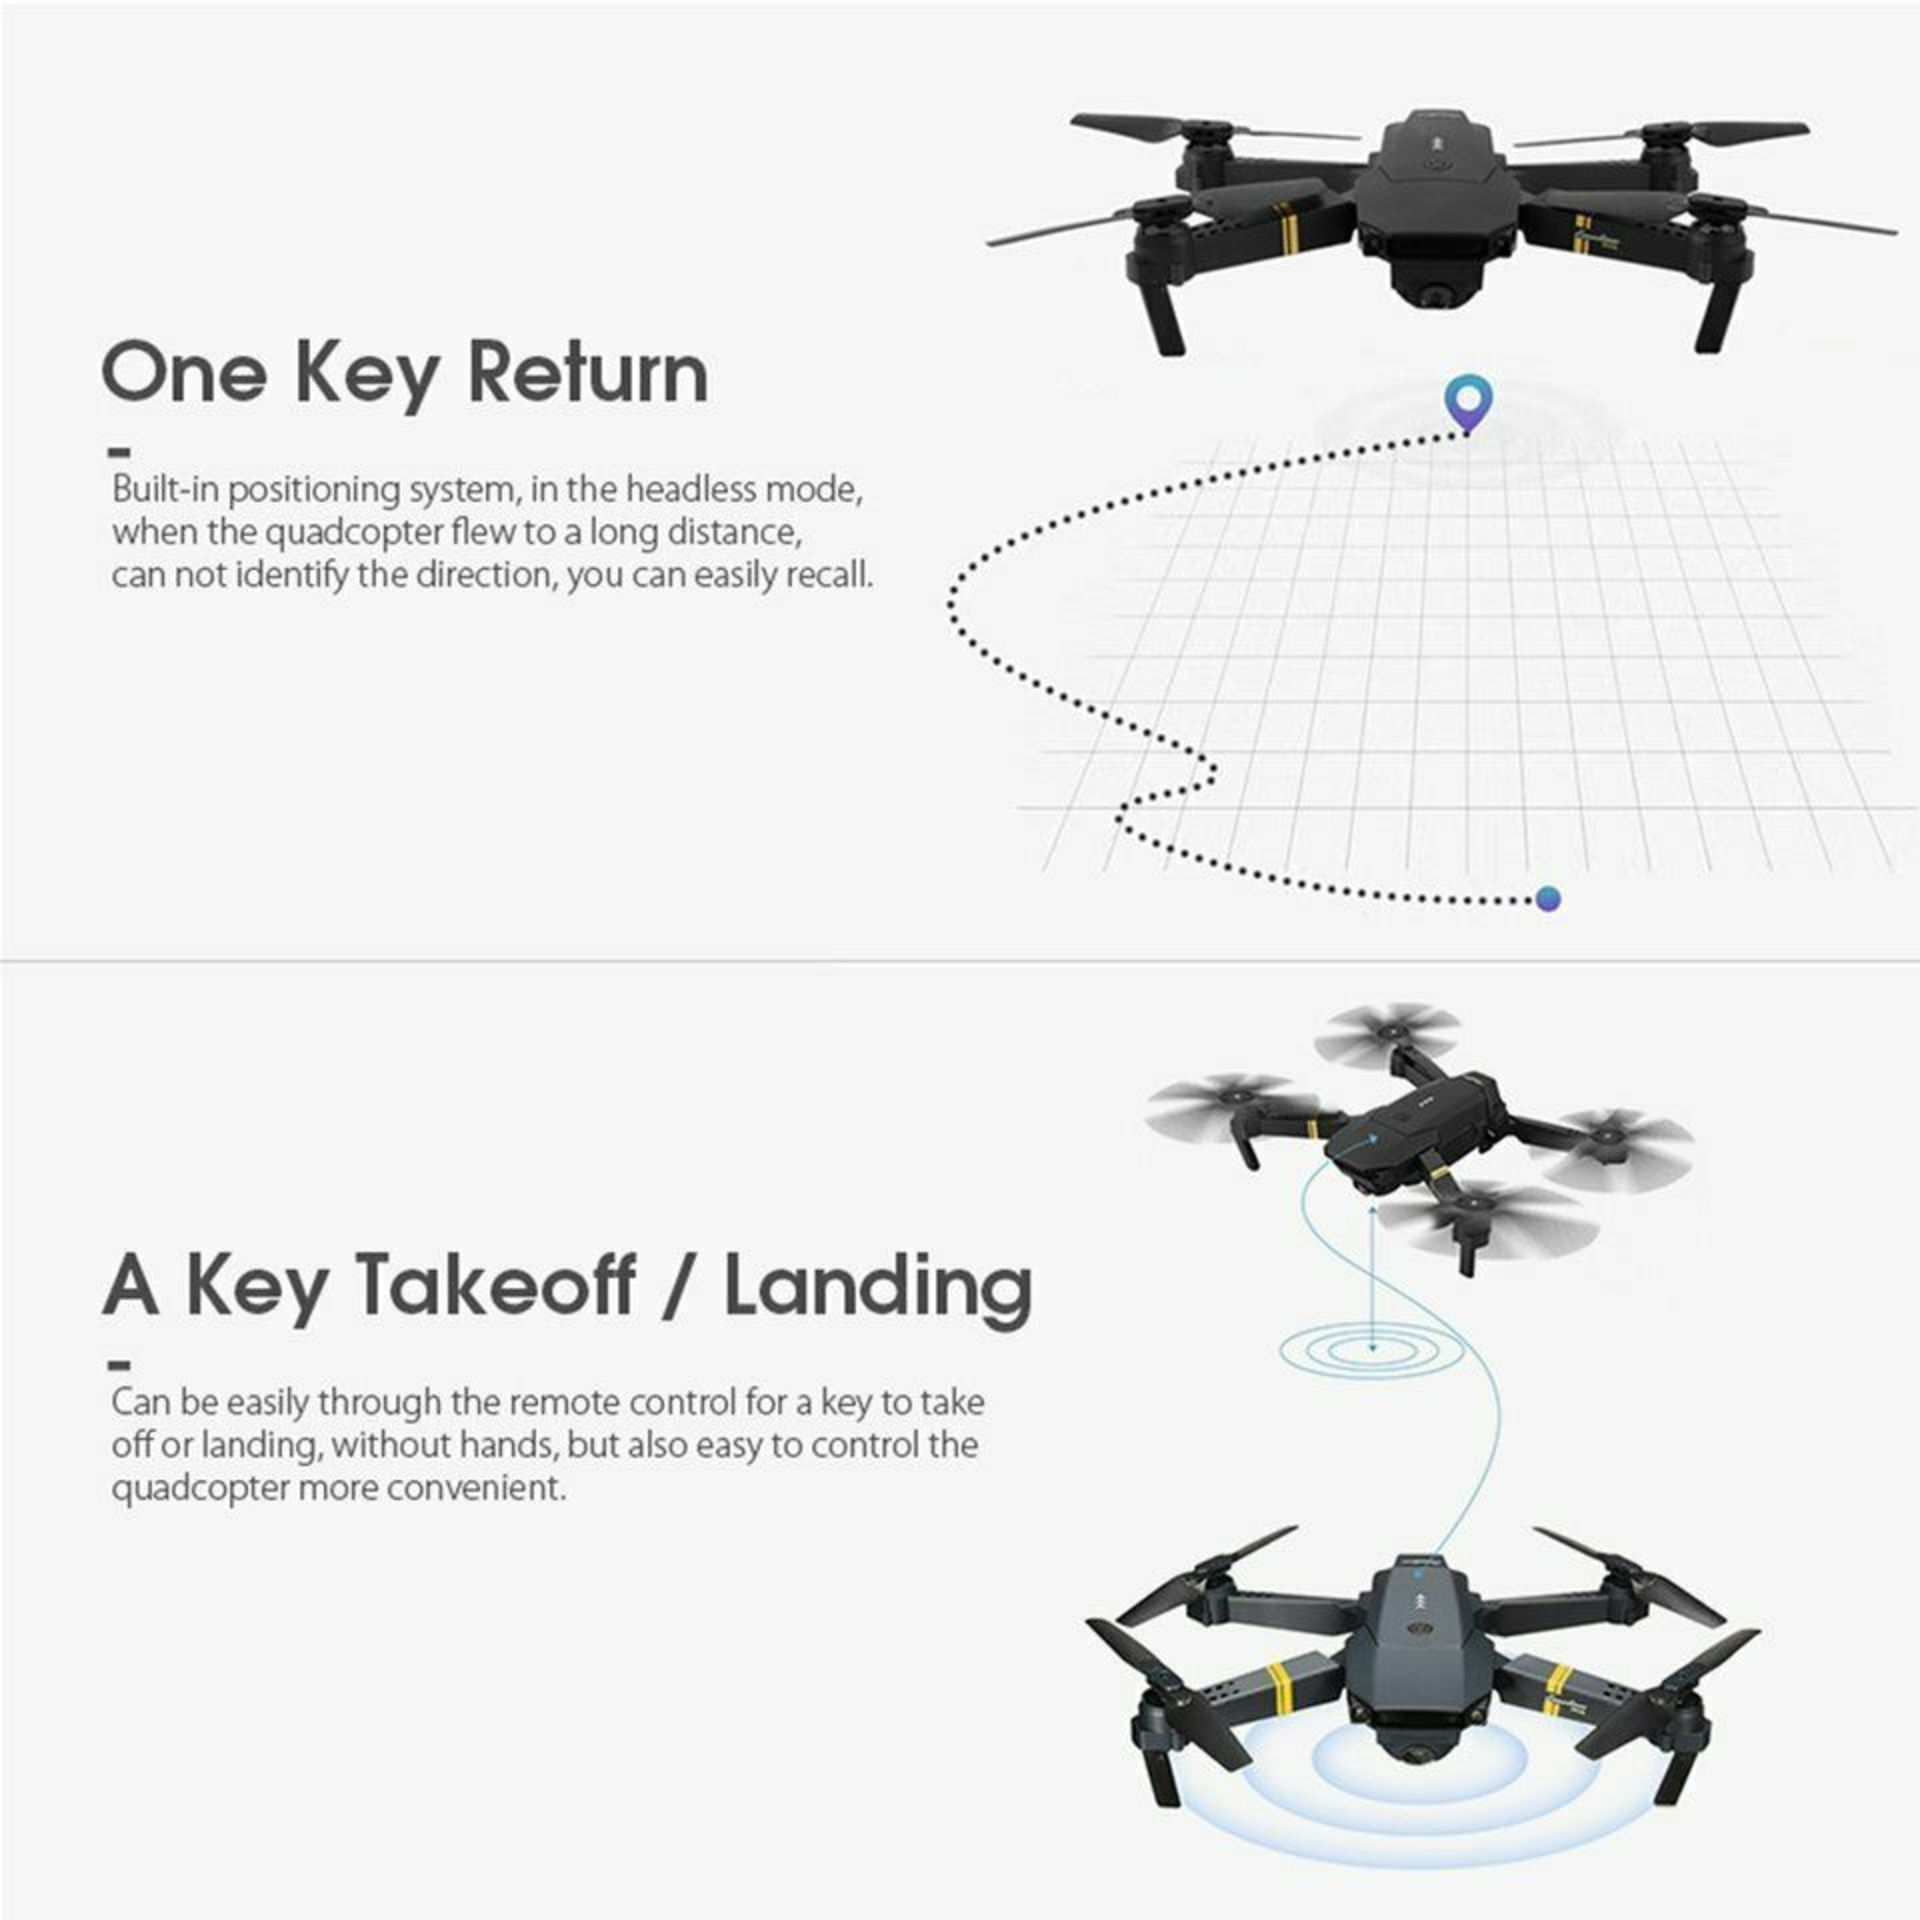 NEW & UNUSED DRONE X PRO WIFI FPV 1080P HD CAMERA FOLDABLE RC QUADCOPTER + BAG *PLUS VAT* - Image 5 of 12